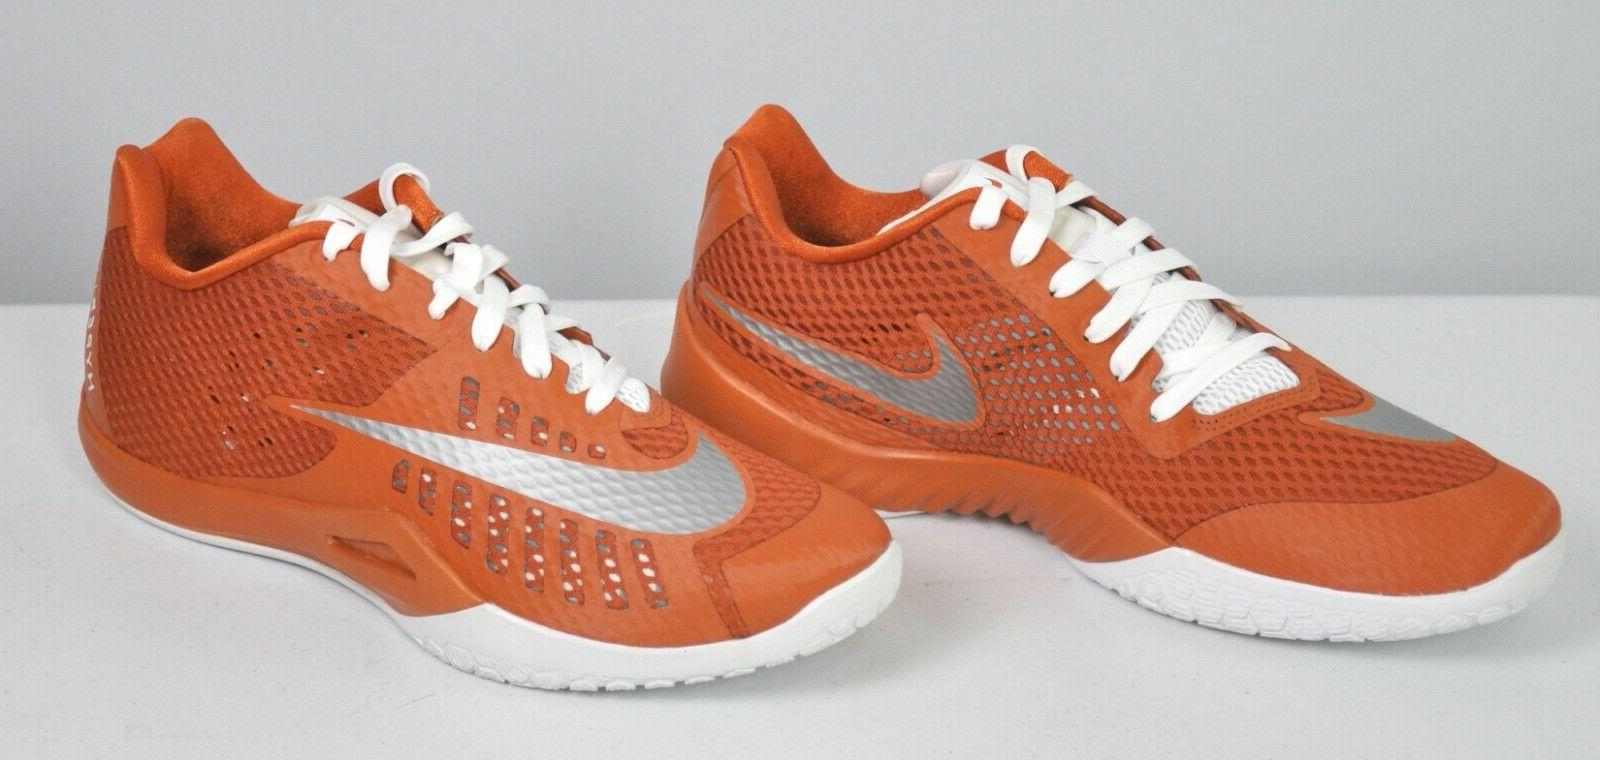 hyperlive tb basketball shoes sneakers 834488 802